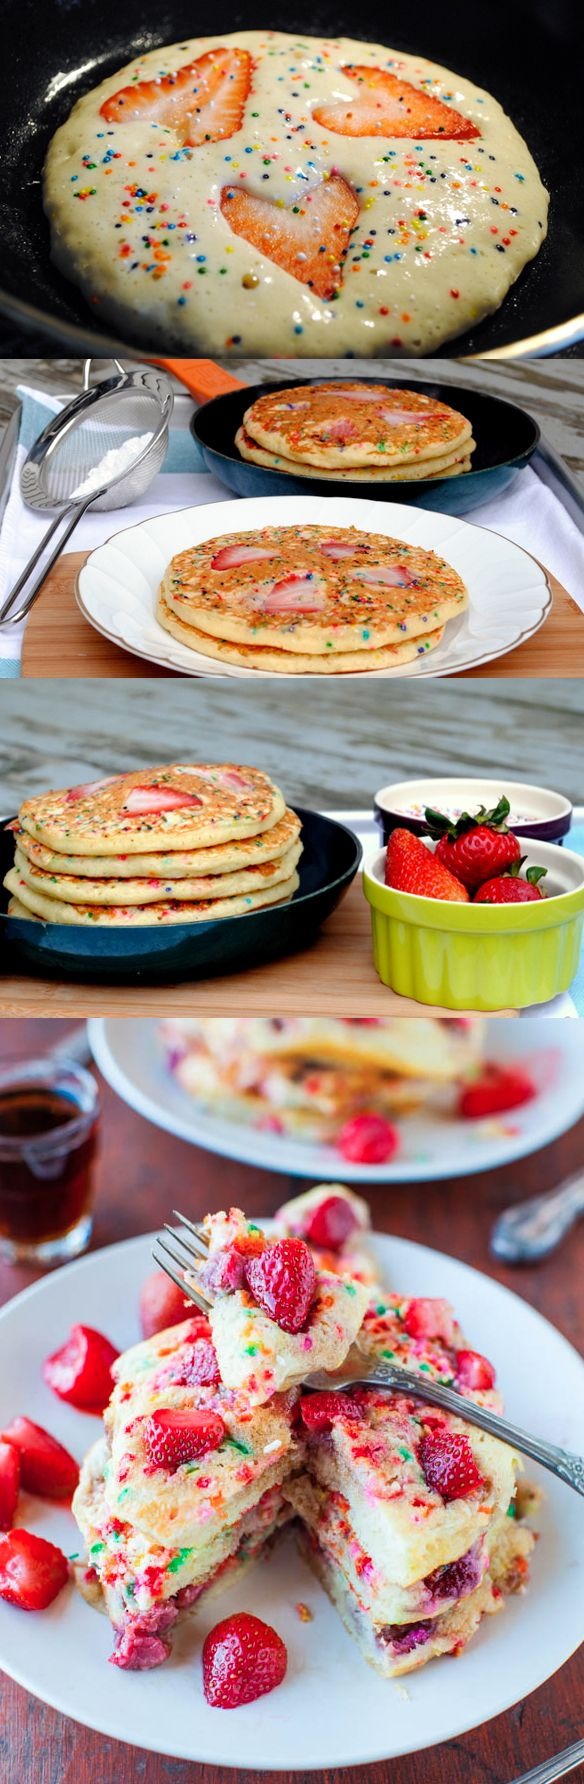 strawberry sprinkles funfetti pancakes breakfast sugar easy crepe better baking bible blog